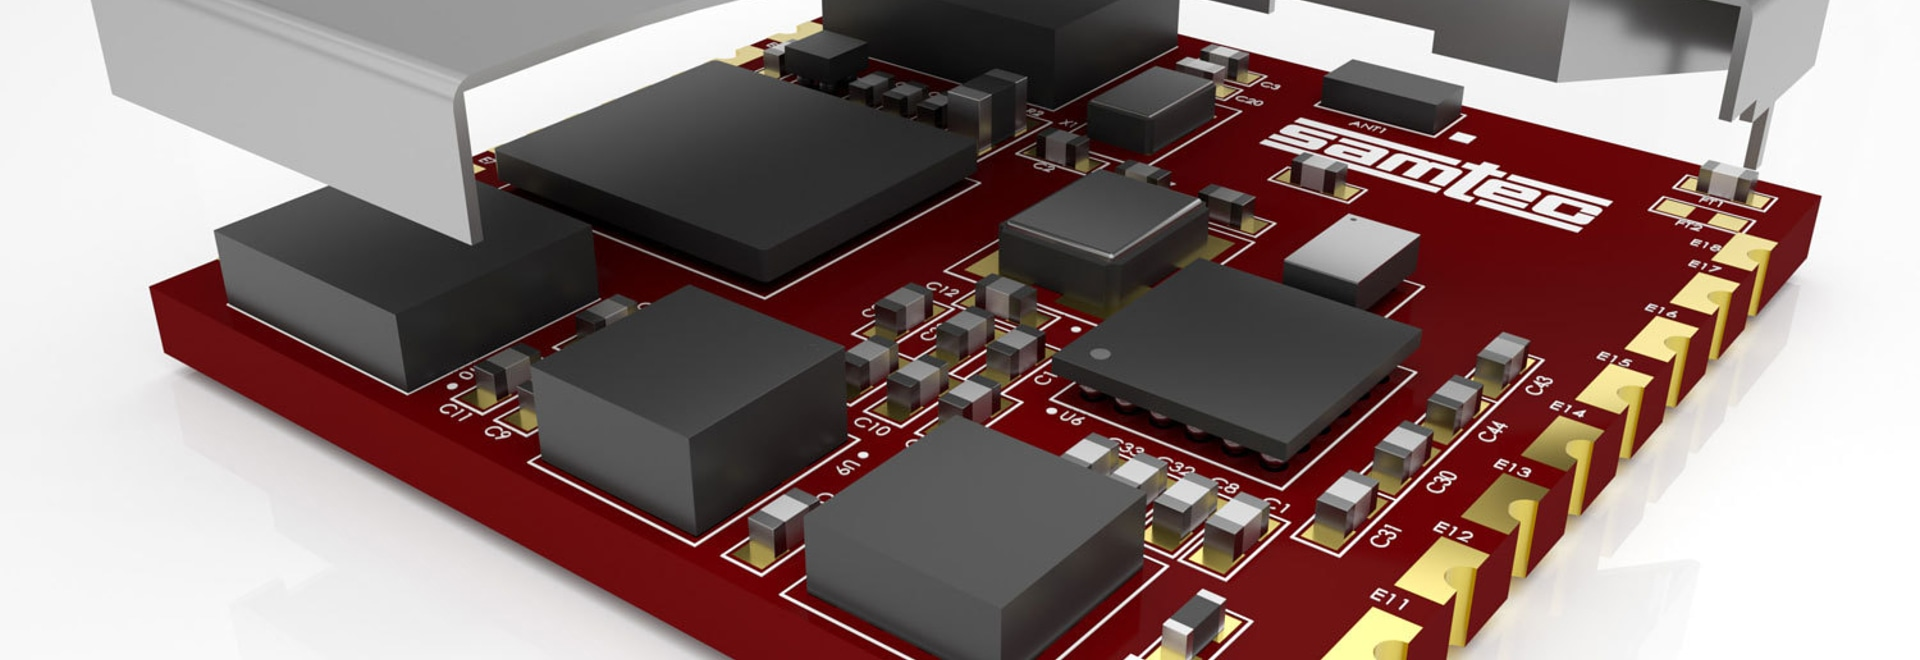 Wireless Sensor Module Cuts IoT App-Development Time